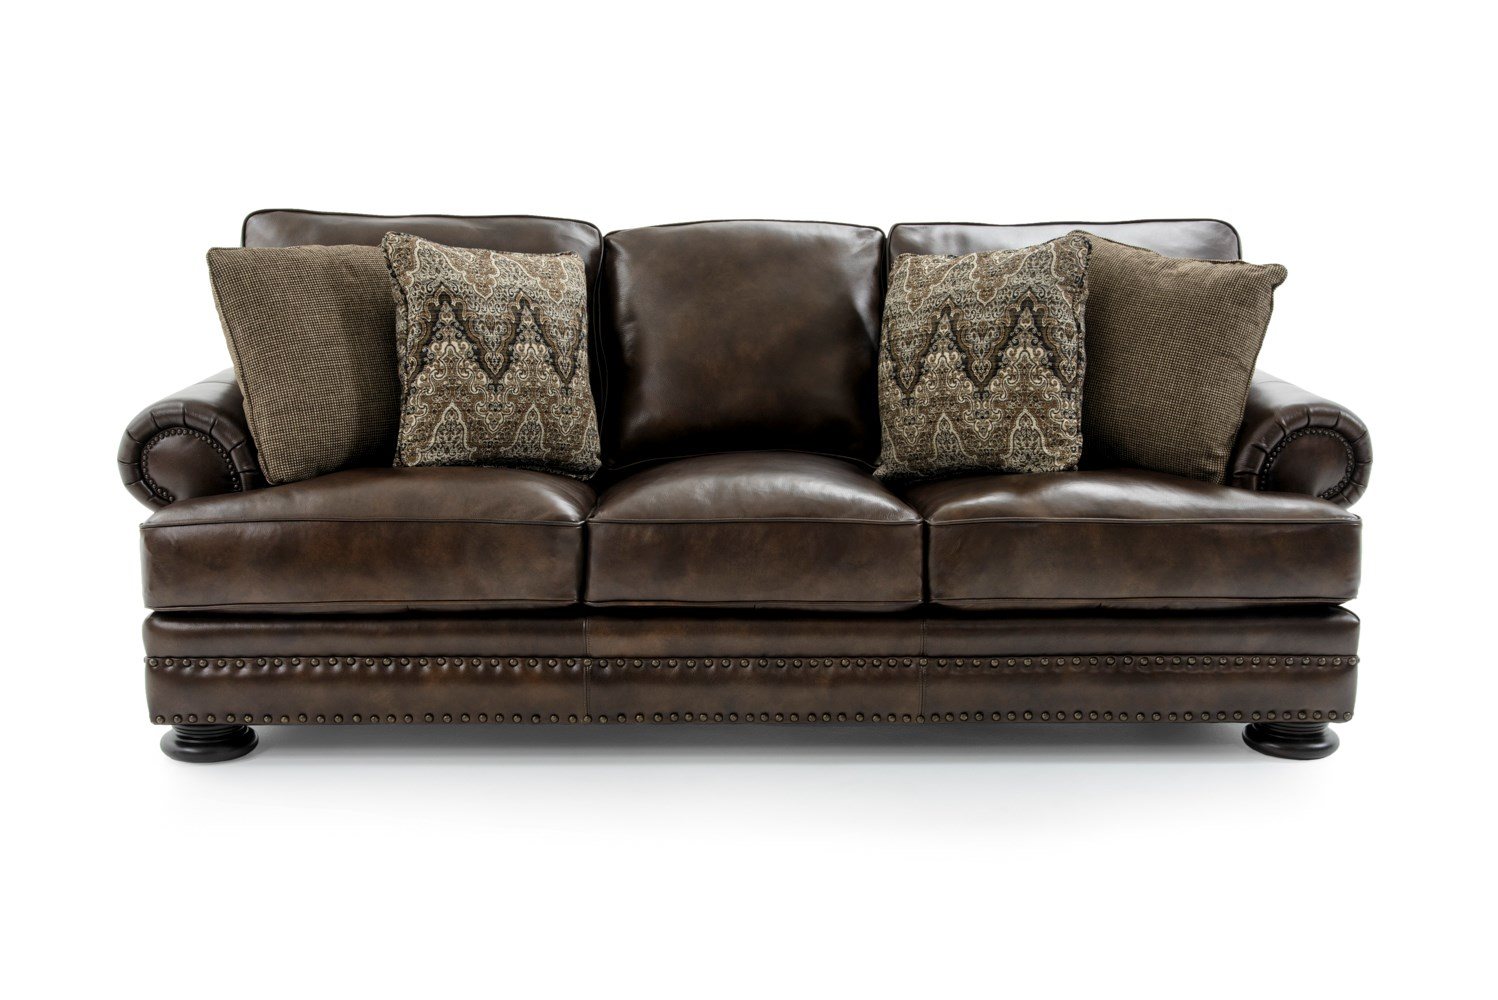 Bernhardt Foster 5377l Stationary Sofa Baer S Furniture